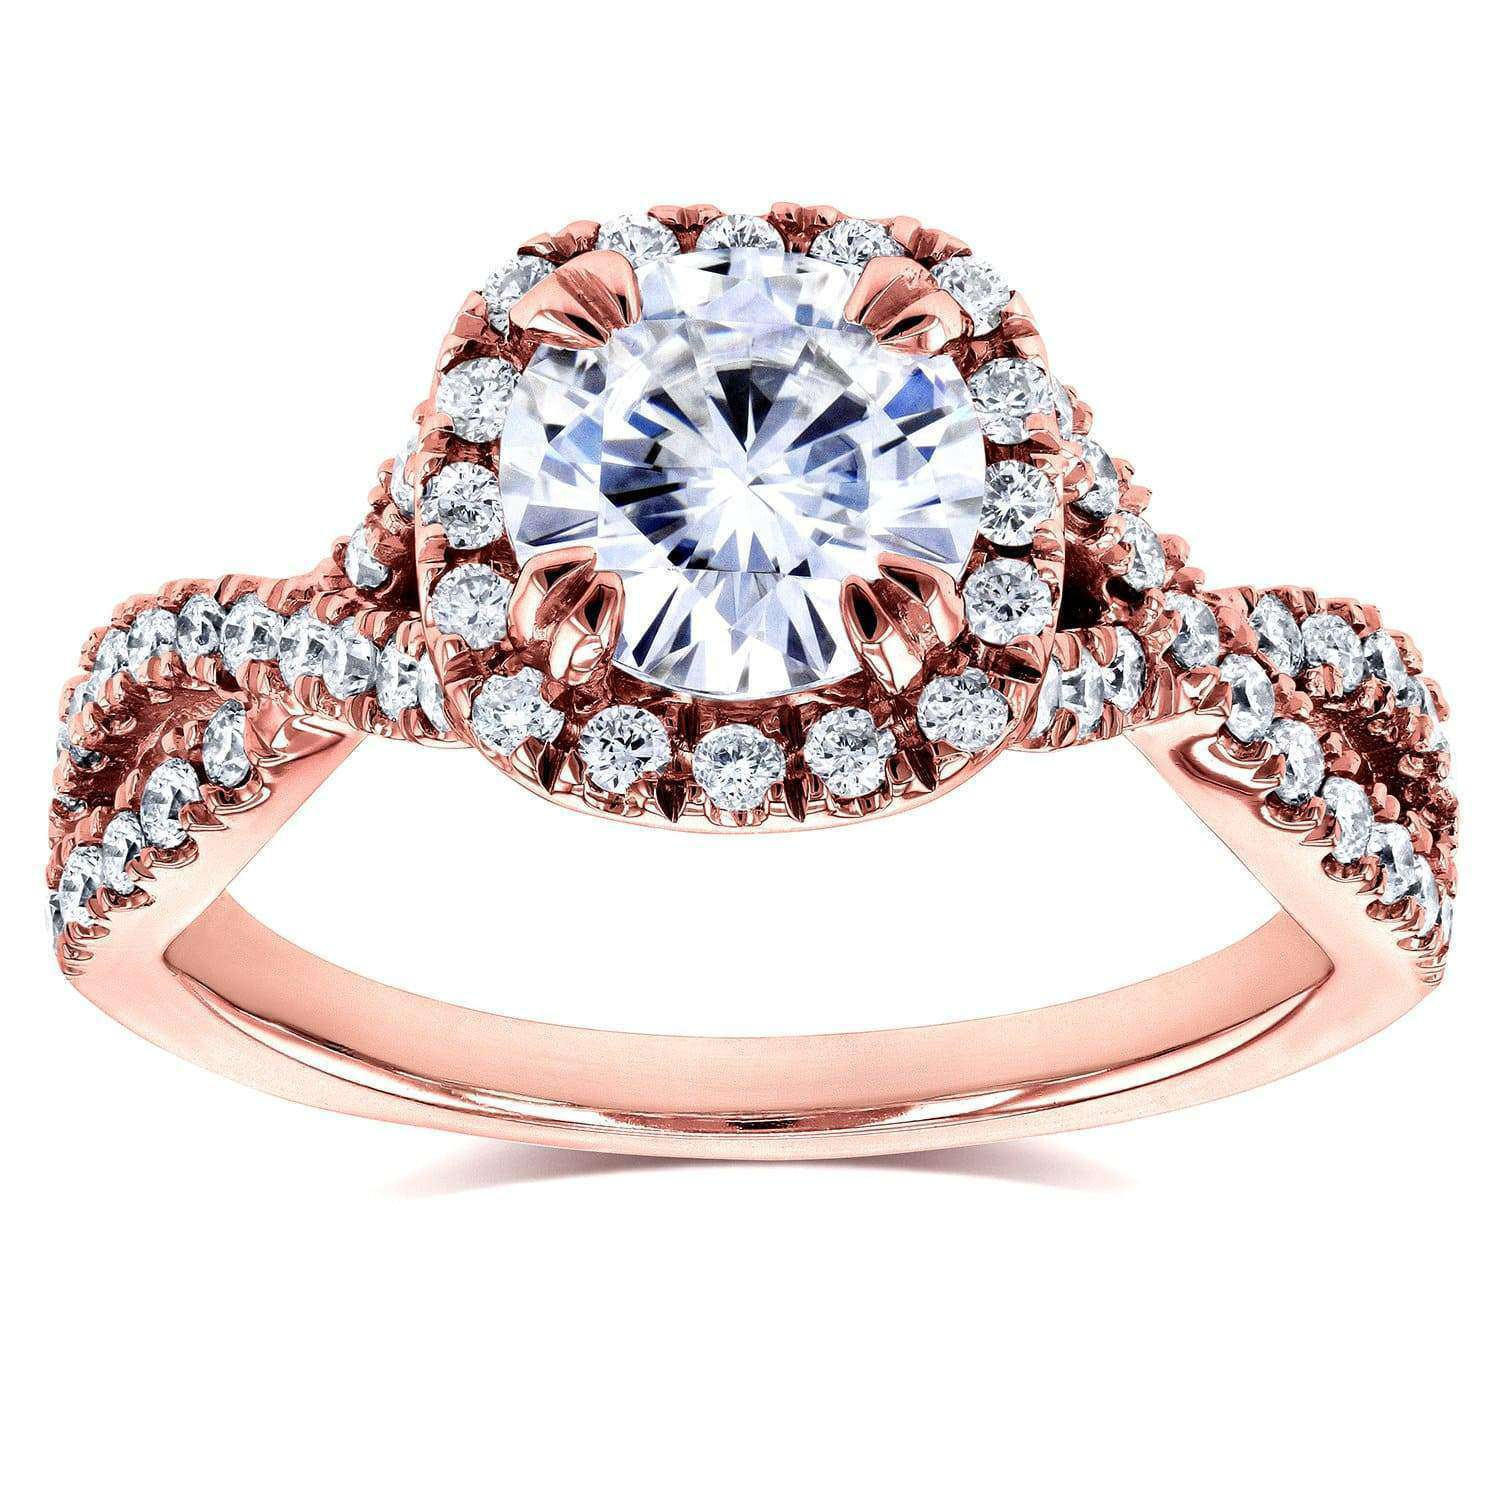 Discounts Forever One (D-F) Moissanite Engagement Ring and Diamond 1 1/2 CTW 14k Rose Gold - 7.5